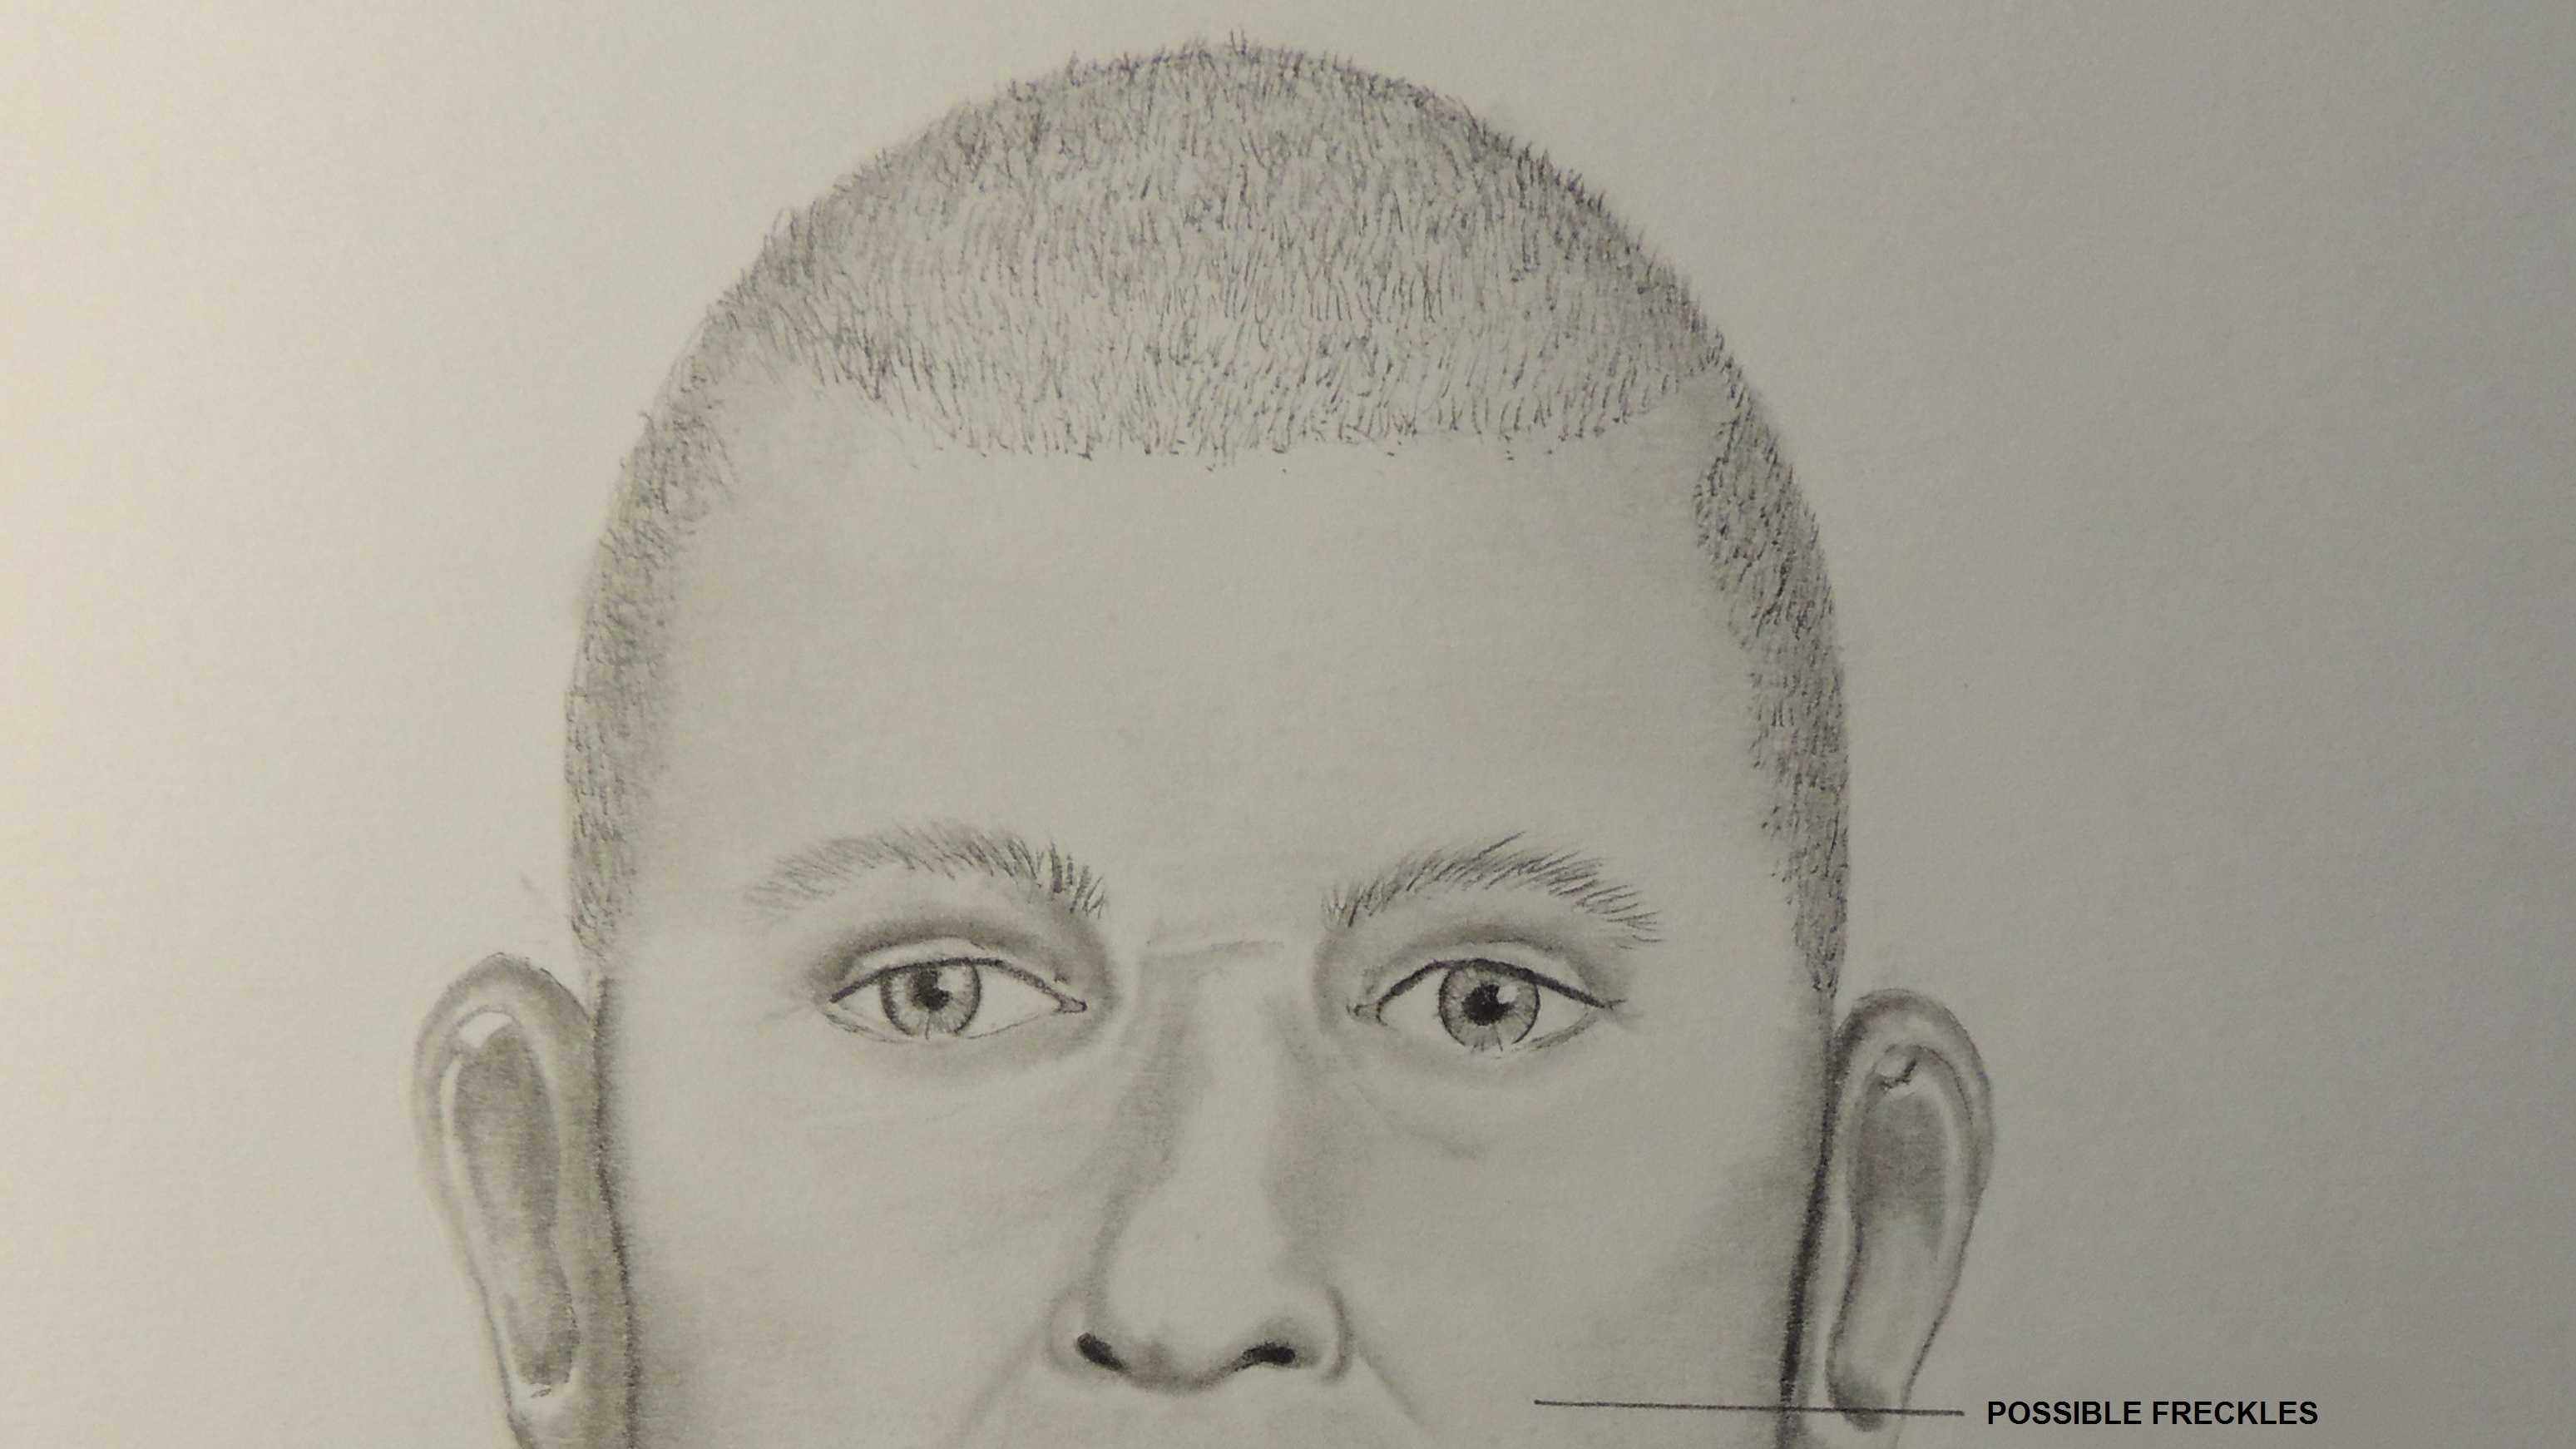 Police are looking for a suspect accused of abducting a woman and taking her across state lines.